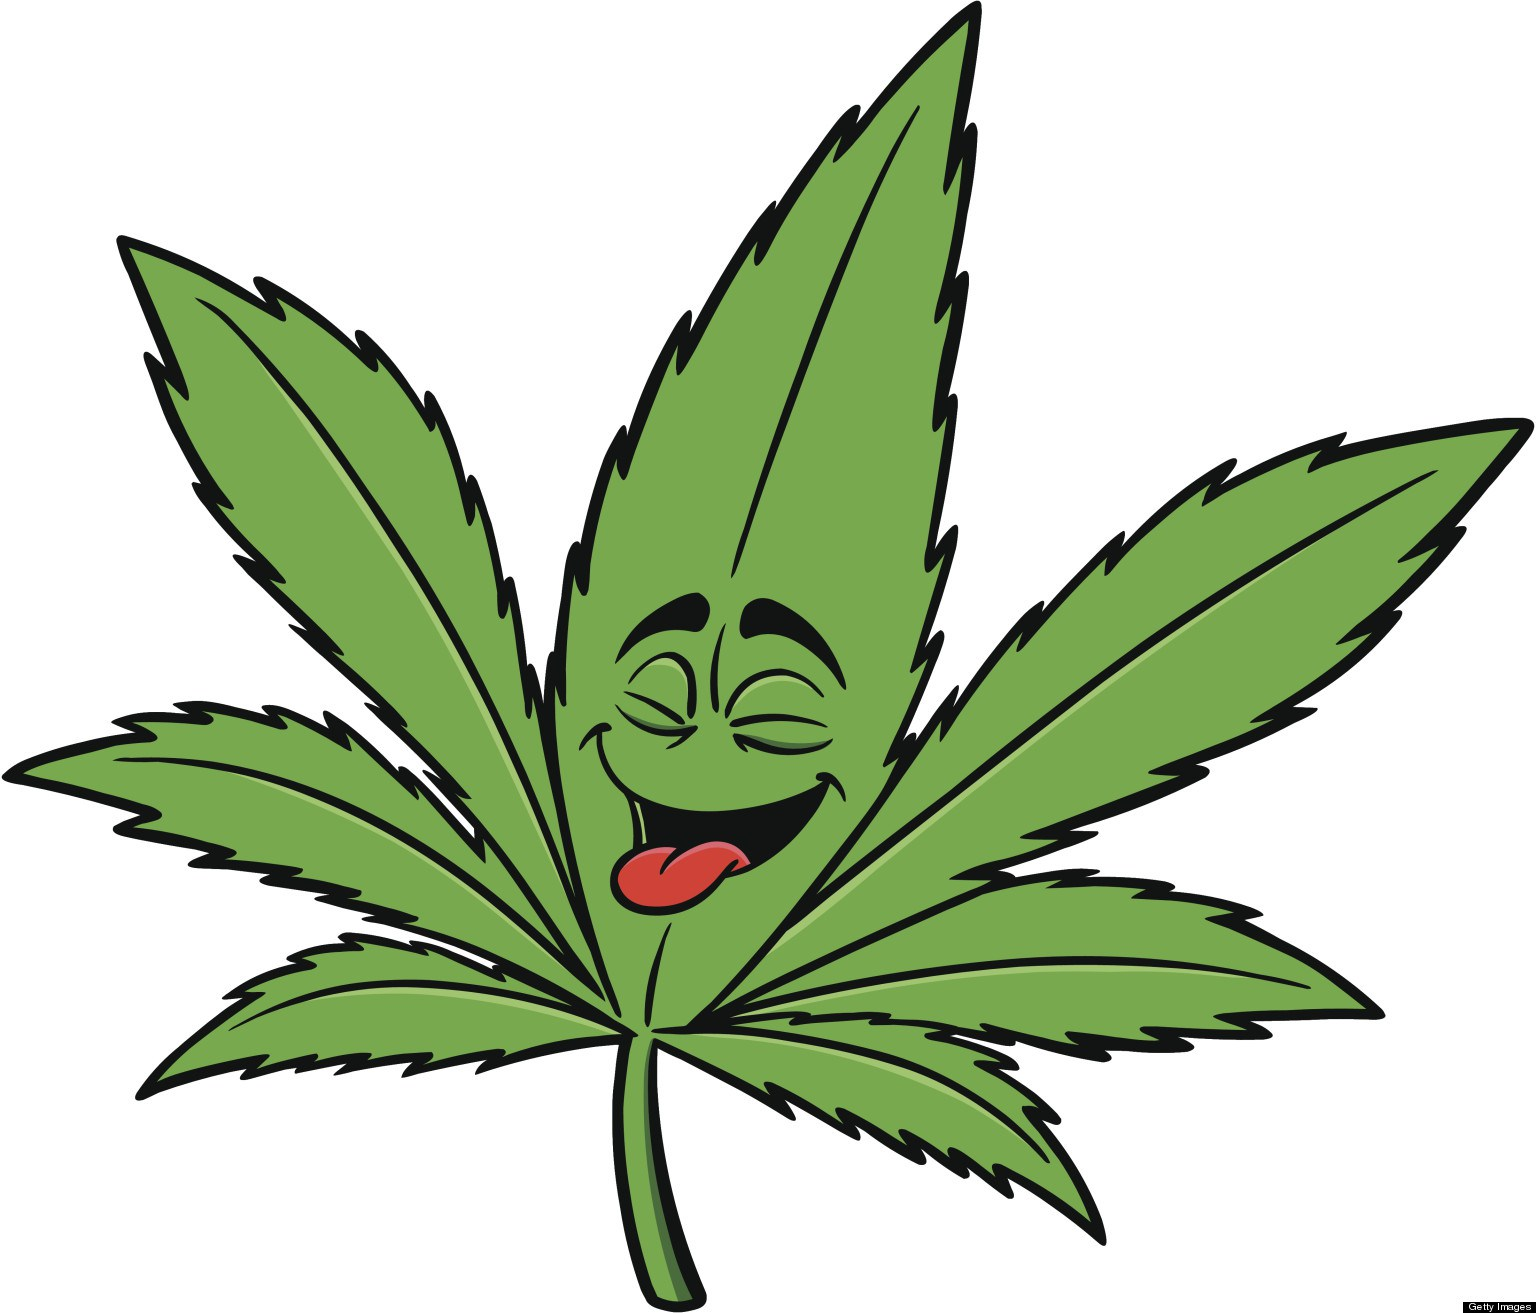 Marijuana leaves clipart.